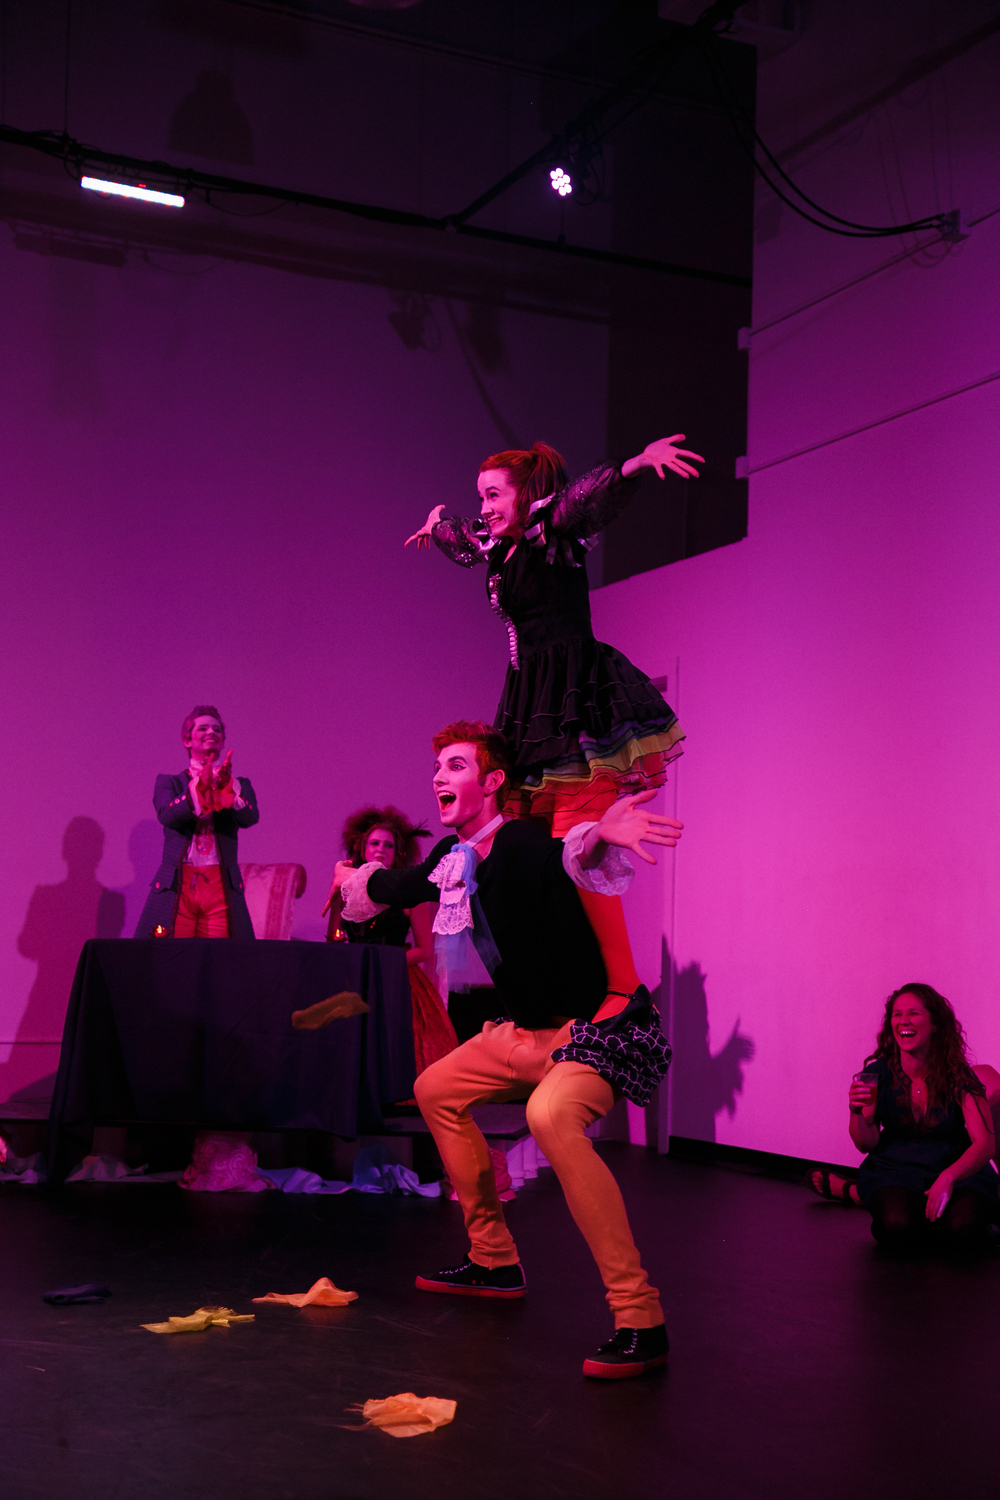 Dancer on top of actor's shoulders performing at Austin dance theater show themed to 1600s Europe